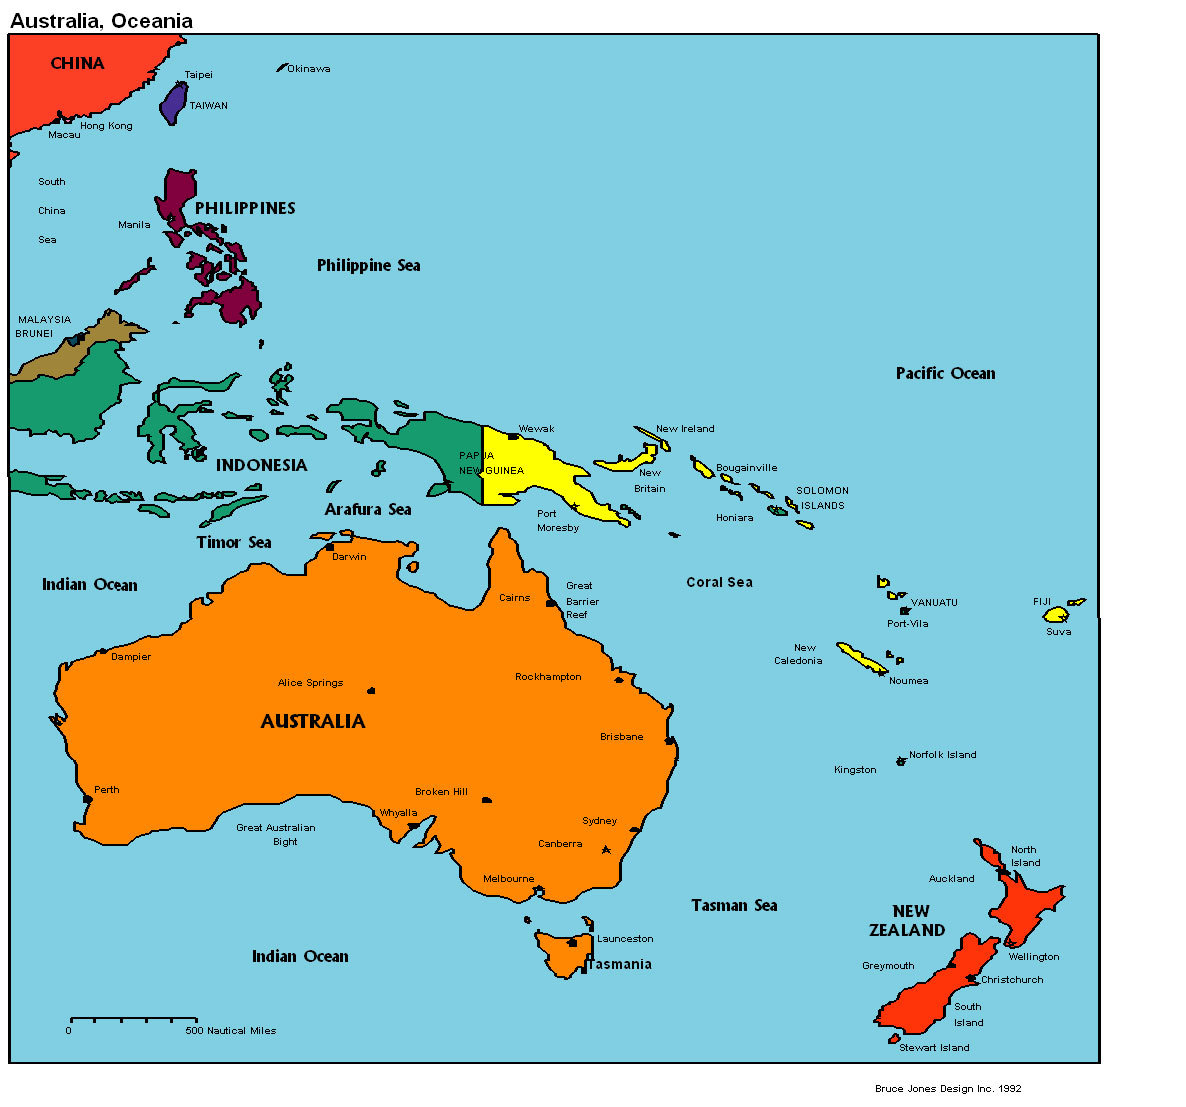 Political Map Of Australia And Oceania Australia And Oceania - Australia political map